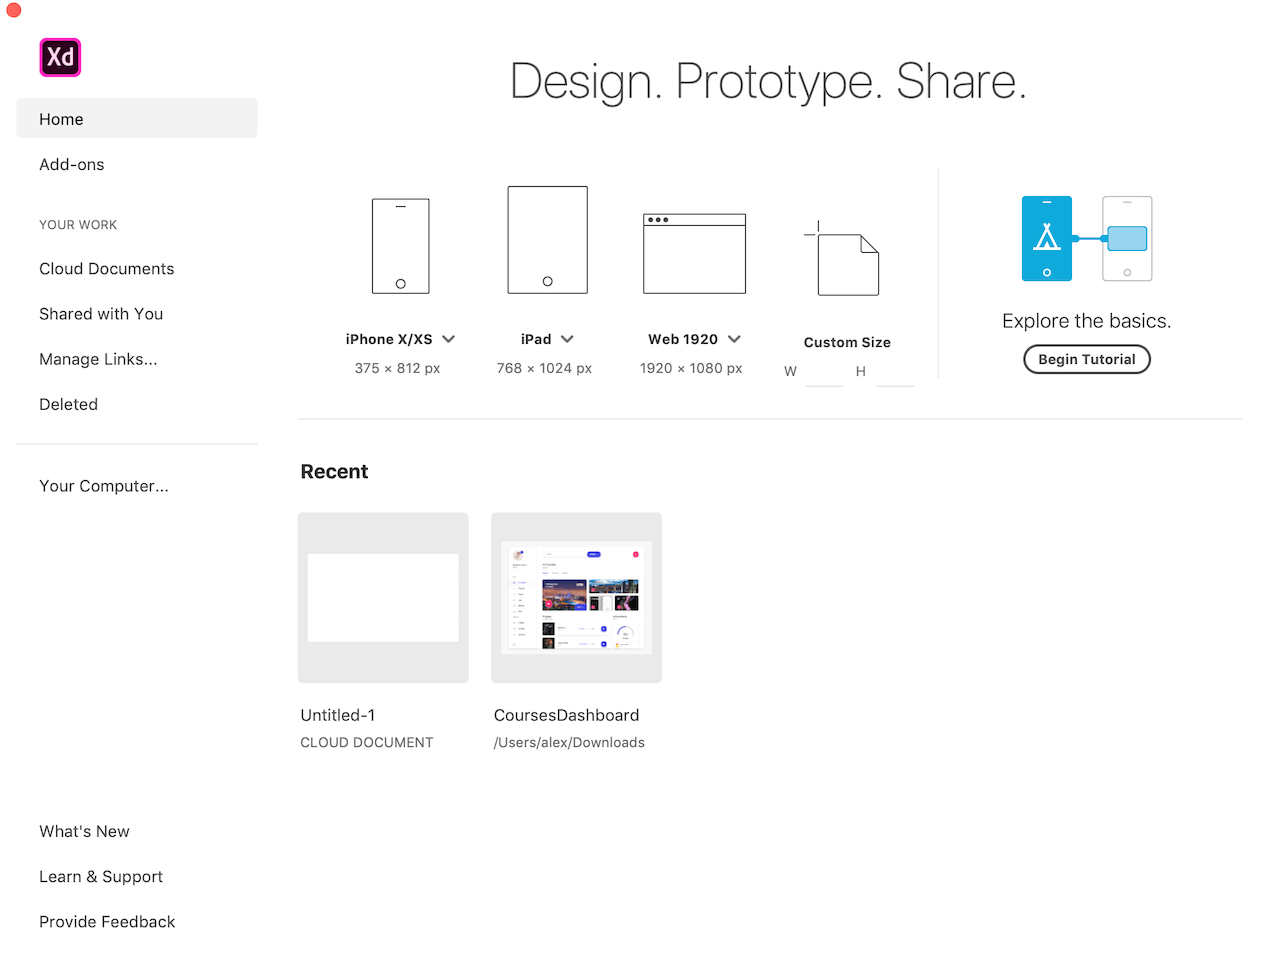 Prototype and Design with Adobe XD